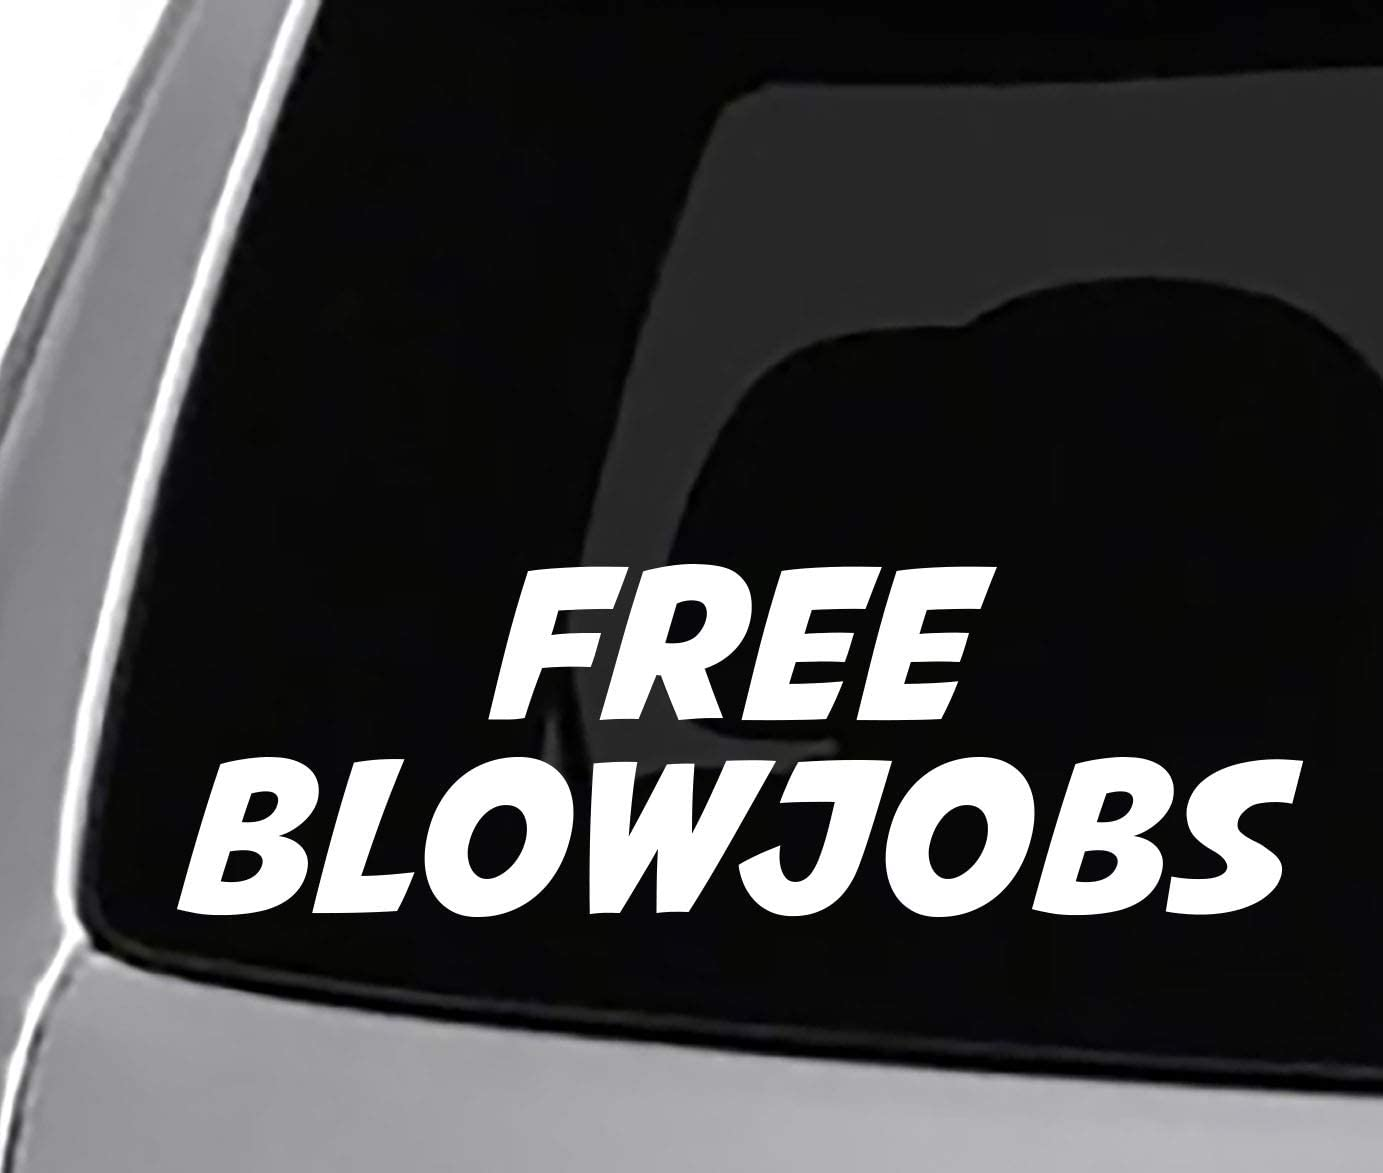 free blowjobs sticker vinyl funny car decal